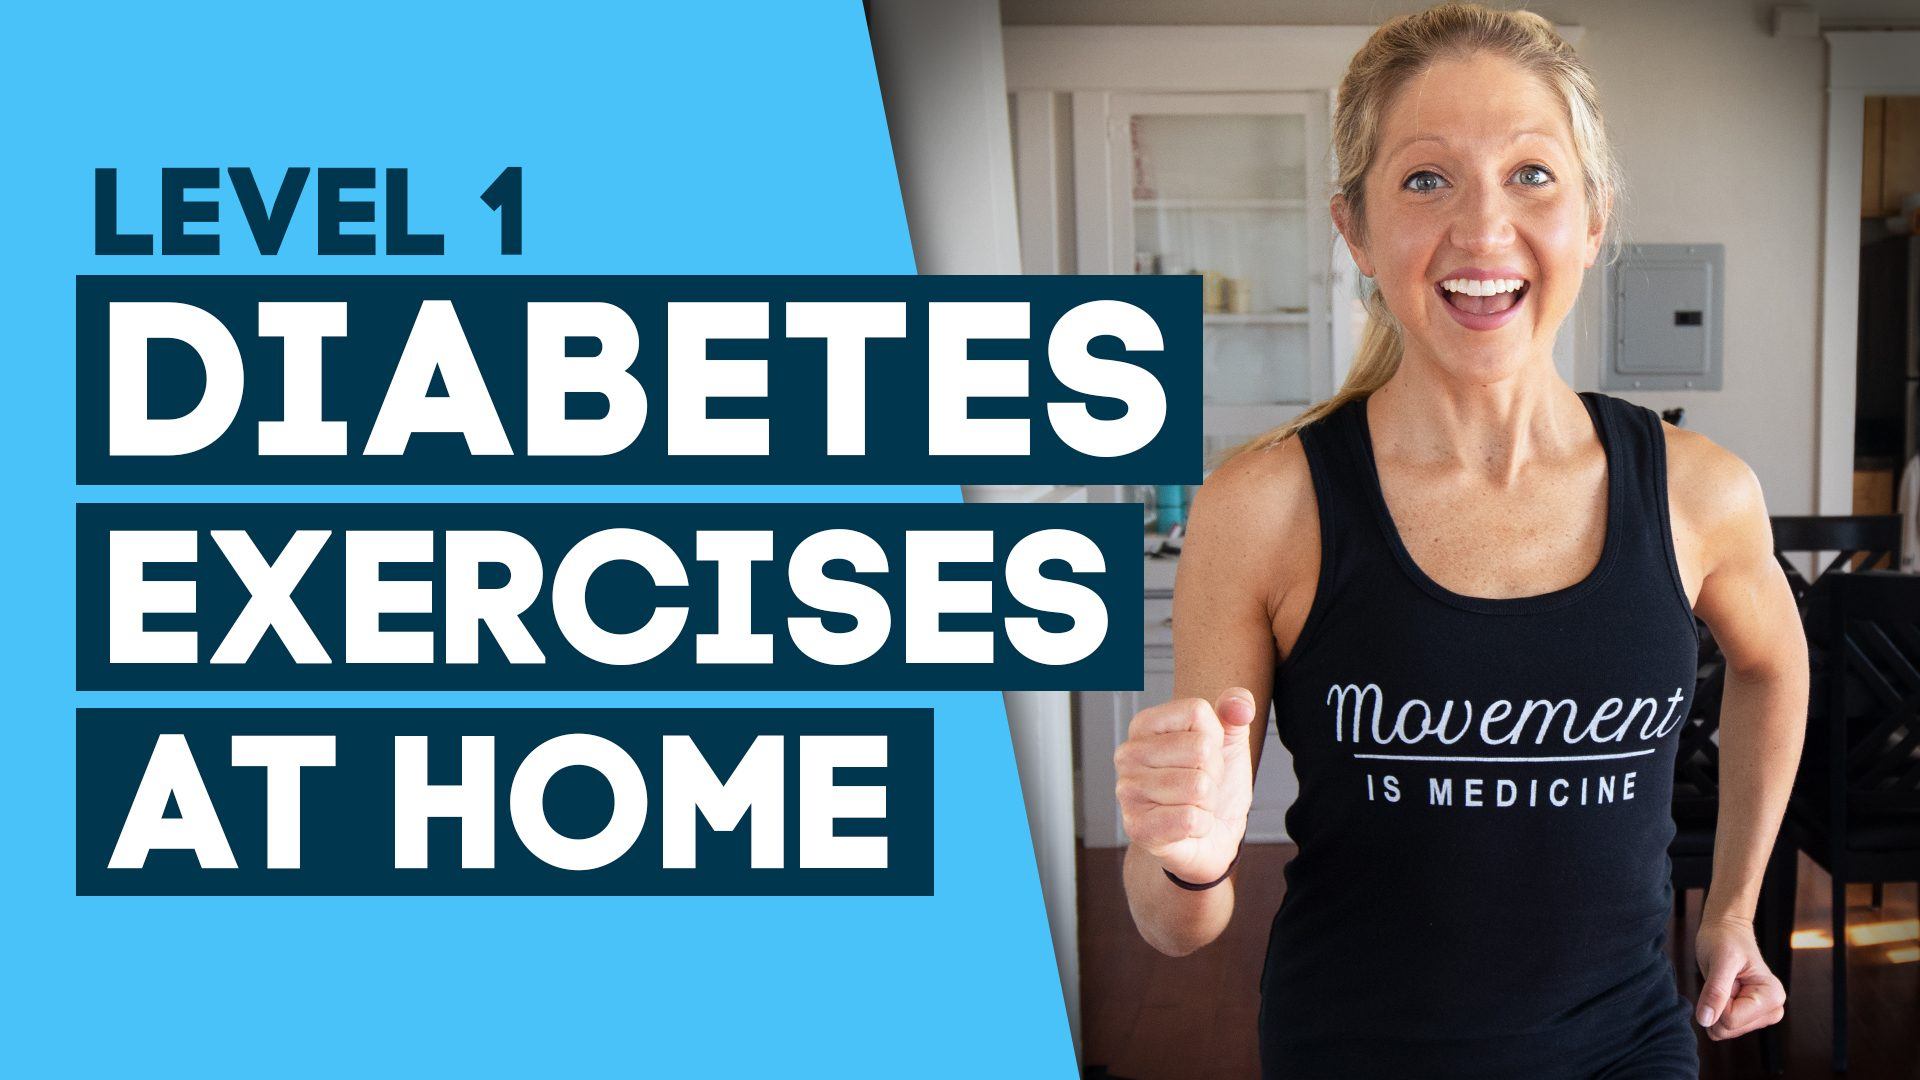 Diabetes Exercise level 1 At Home Workout- To Help Cure Diabetes (Level 1)